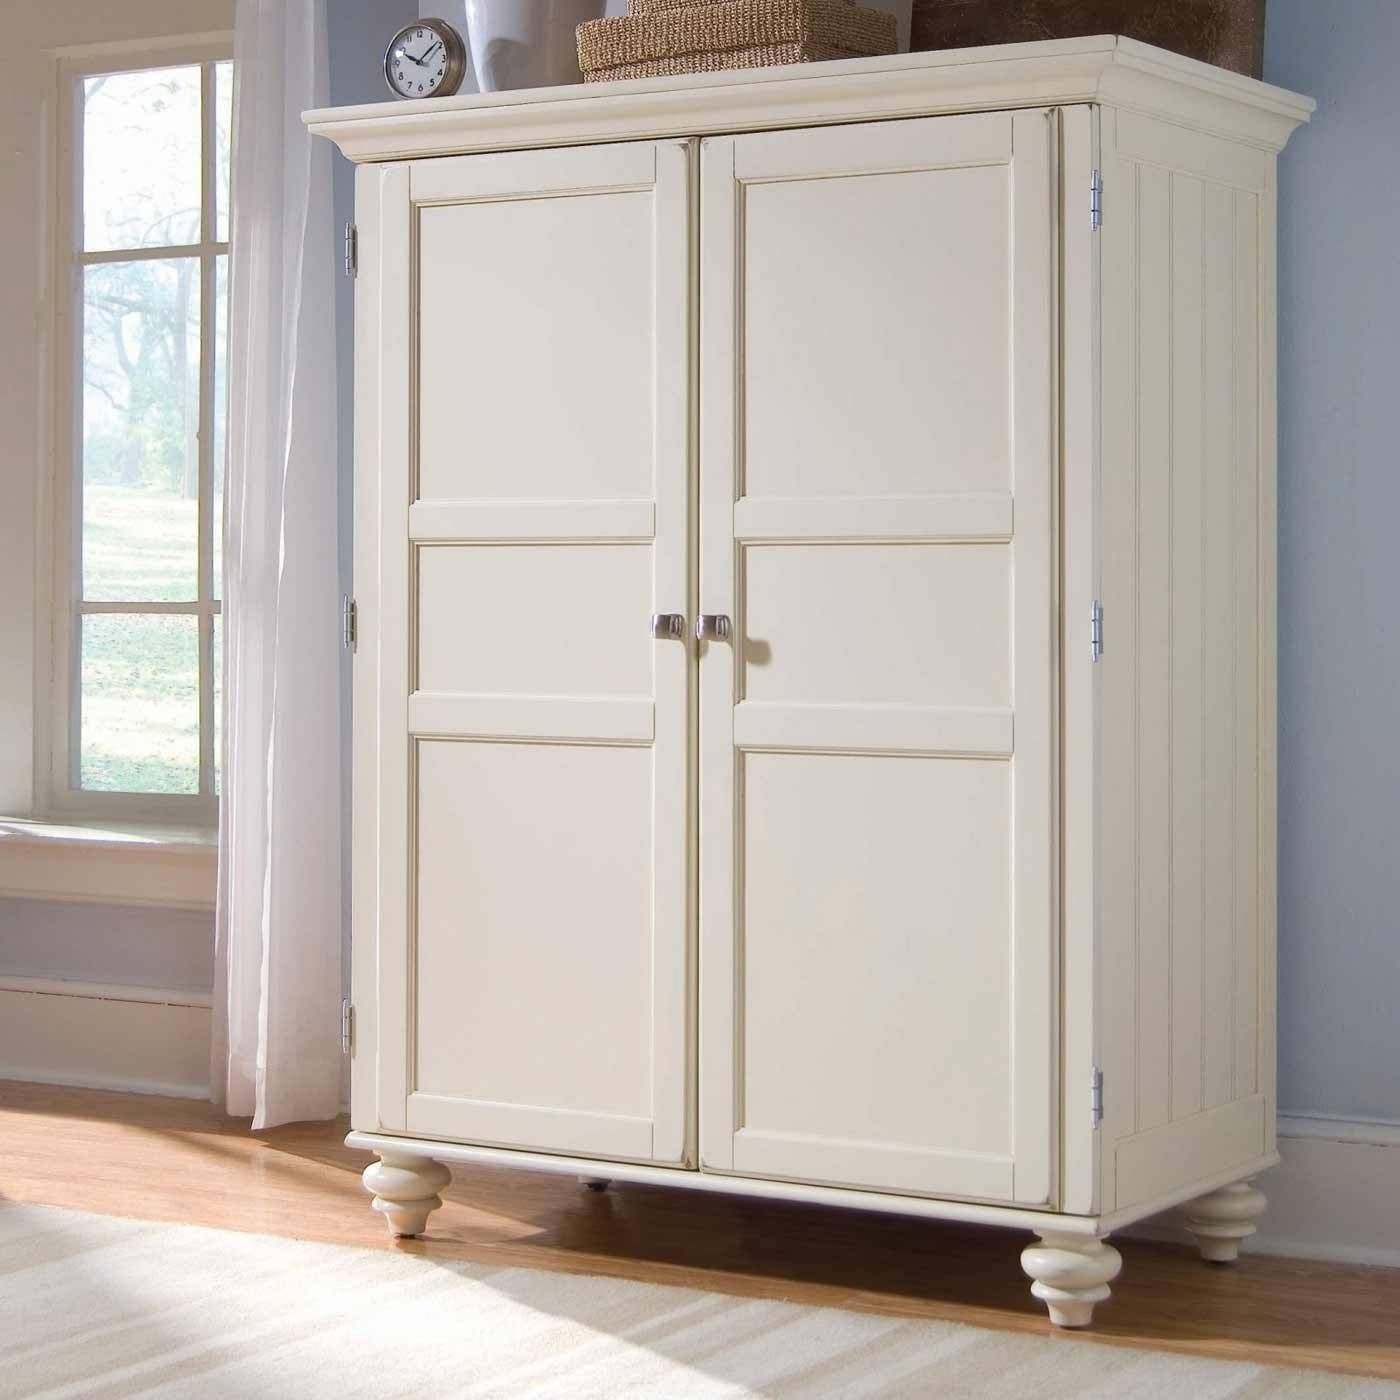 Furniture: Fancy Wardrobe Armoire For Wardrobe Organizer Idea for Cheap Wood Wardrobes (Image 6 of 15)